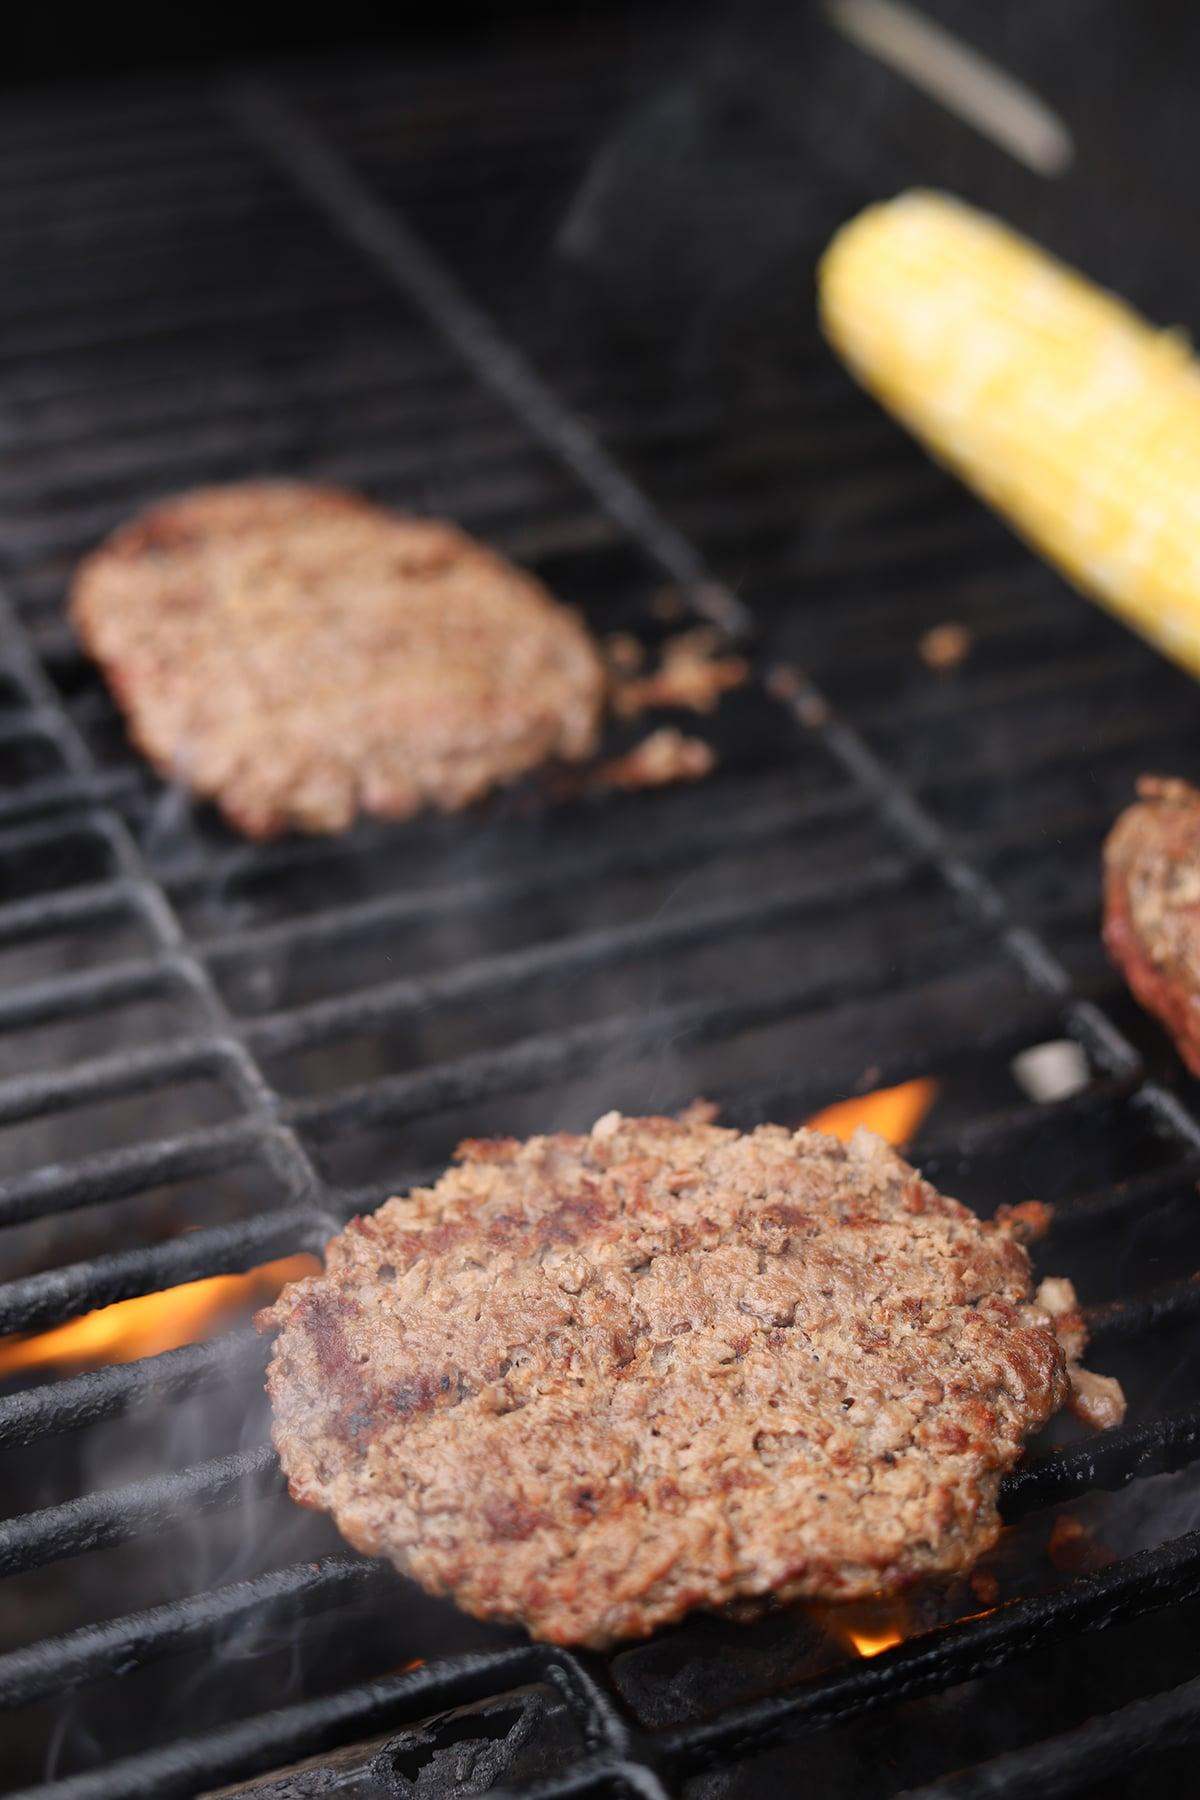 Impossible burgers on the grill.